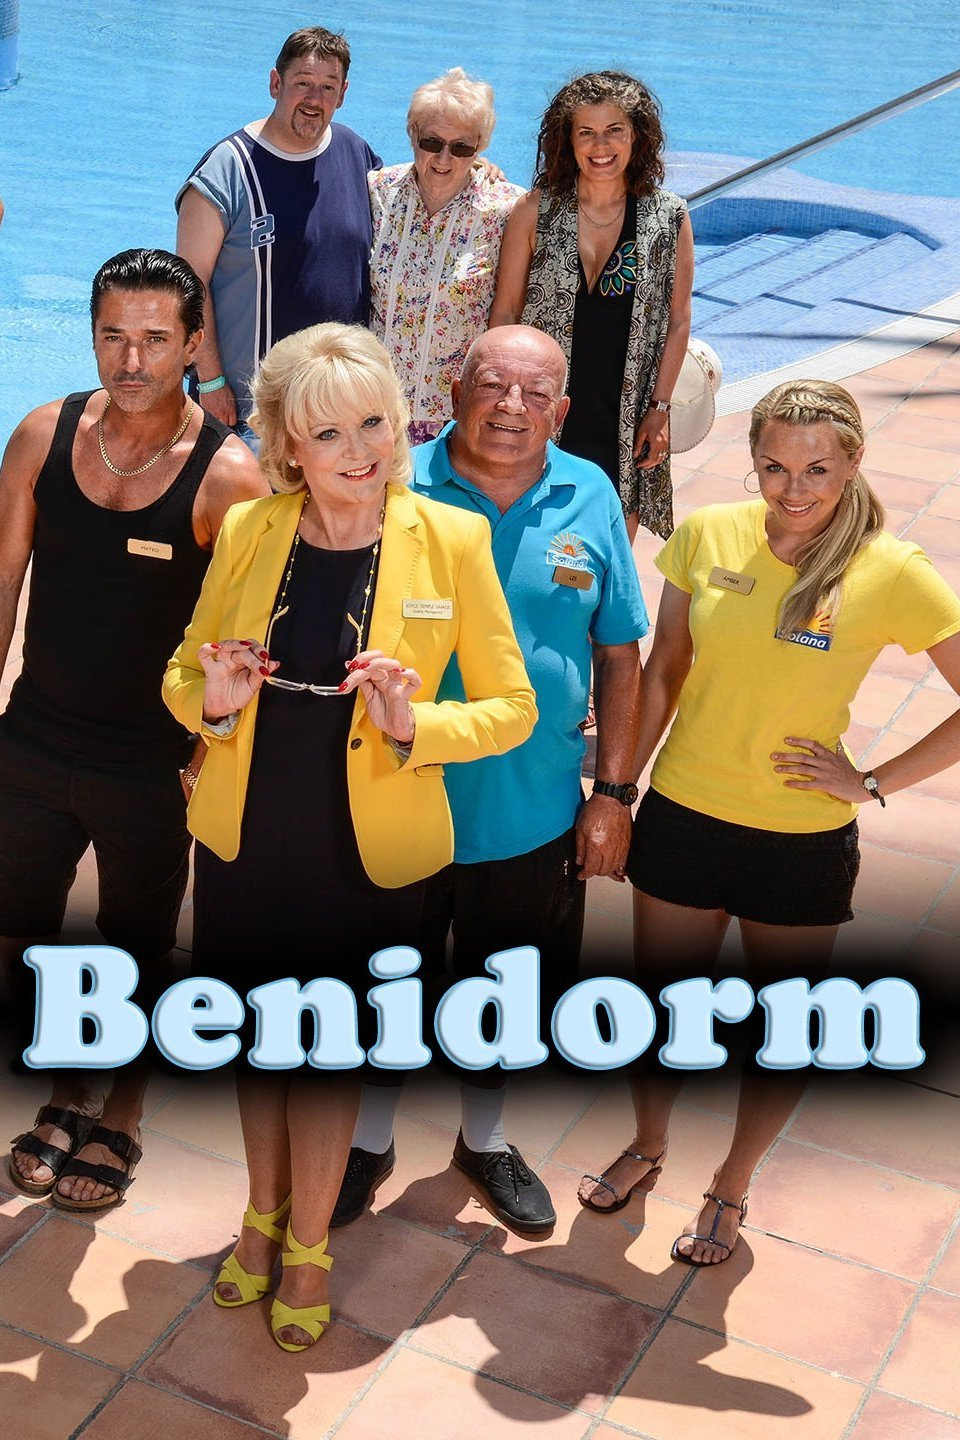 Benidorm tv series wedding